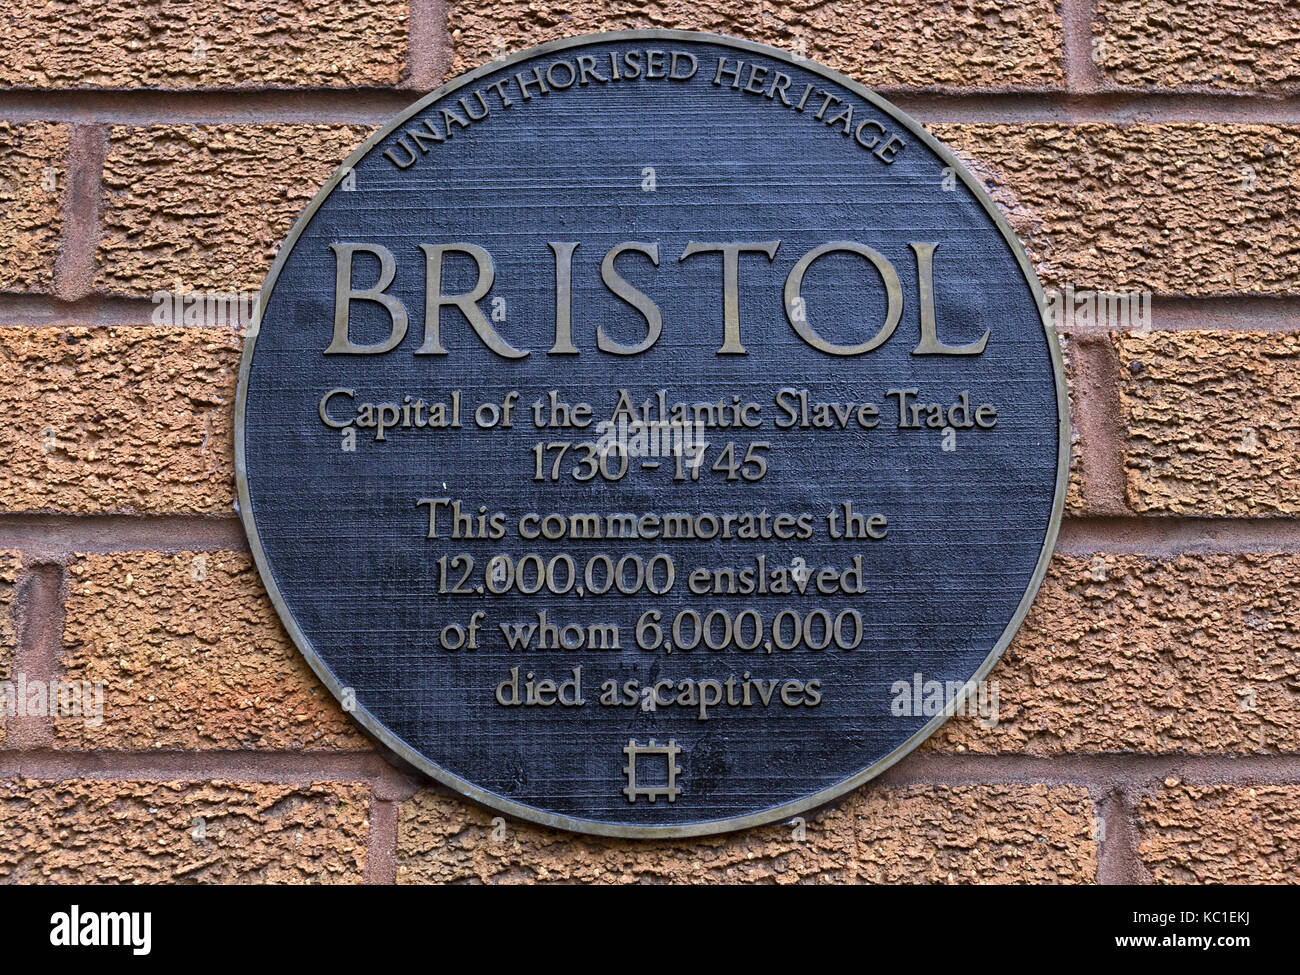 A plaque by artist Will Coles marks Bristol's involvement in the Atlantic slave trade. - Stock Image